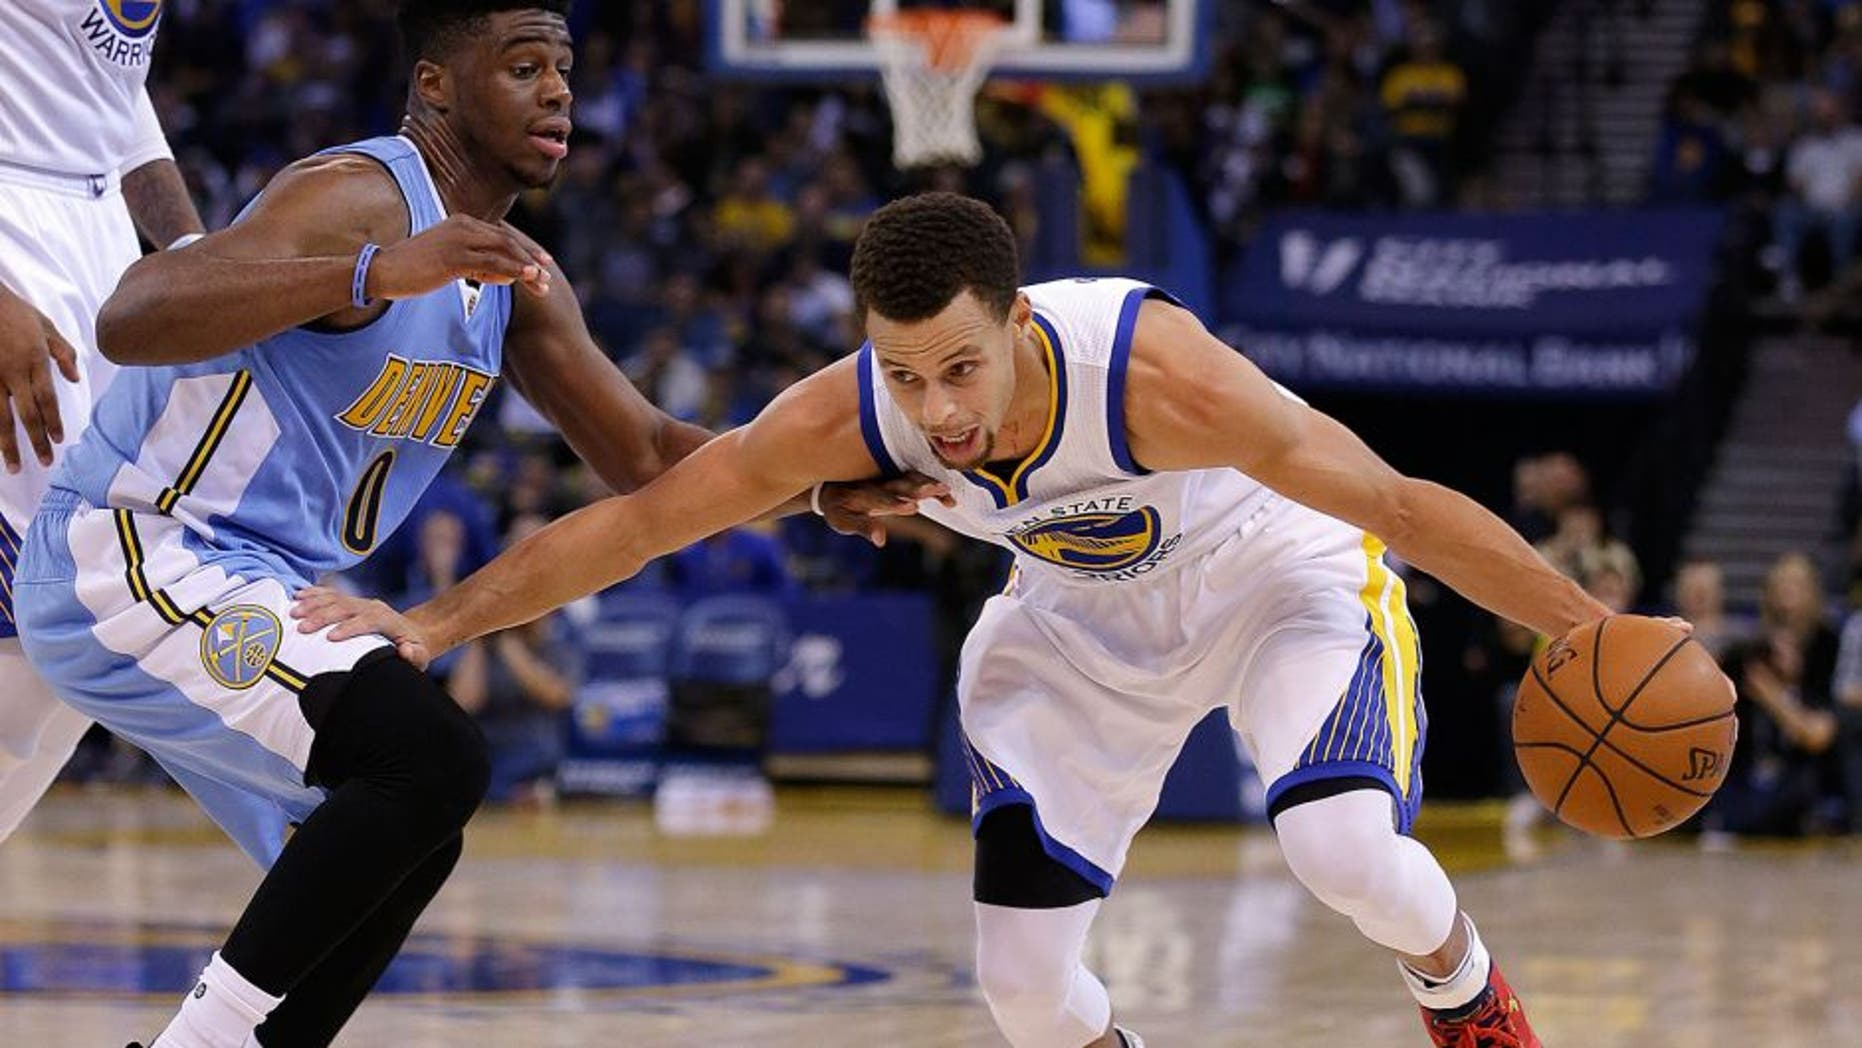 Golden State Warriors' Stephen Curry, right, drives the ball against Denver Nuggets' Emmanuel Mudiay during the second half of an NBA basketball game Friday, Nov. 6, 2015, in Oakland, Calif. (AP Photo/Ben Margot)